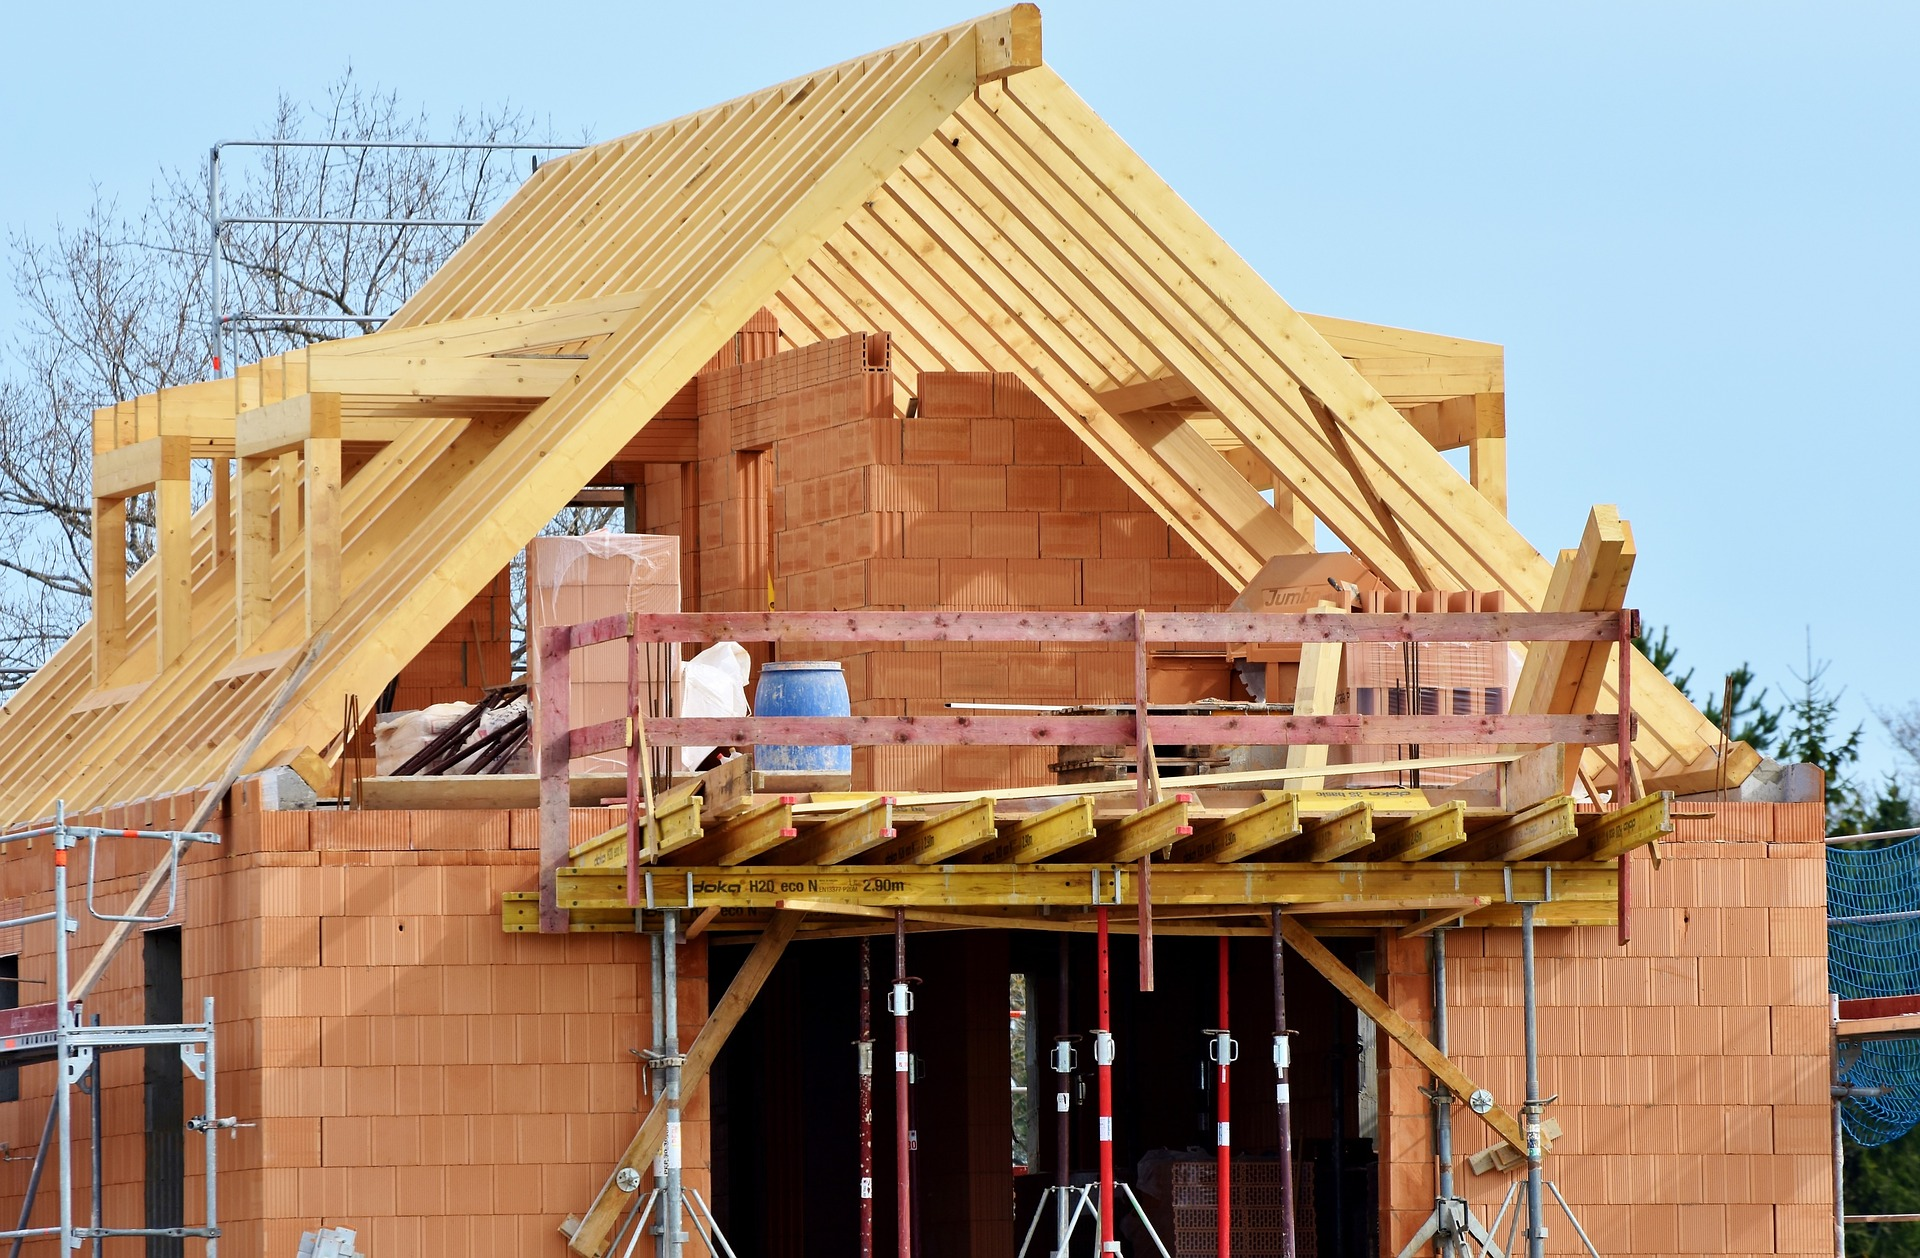 Home construction well below historical norms